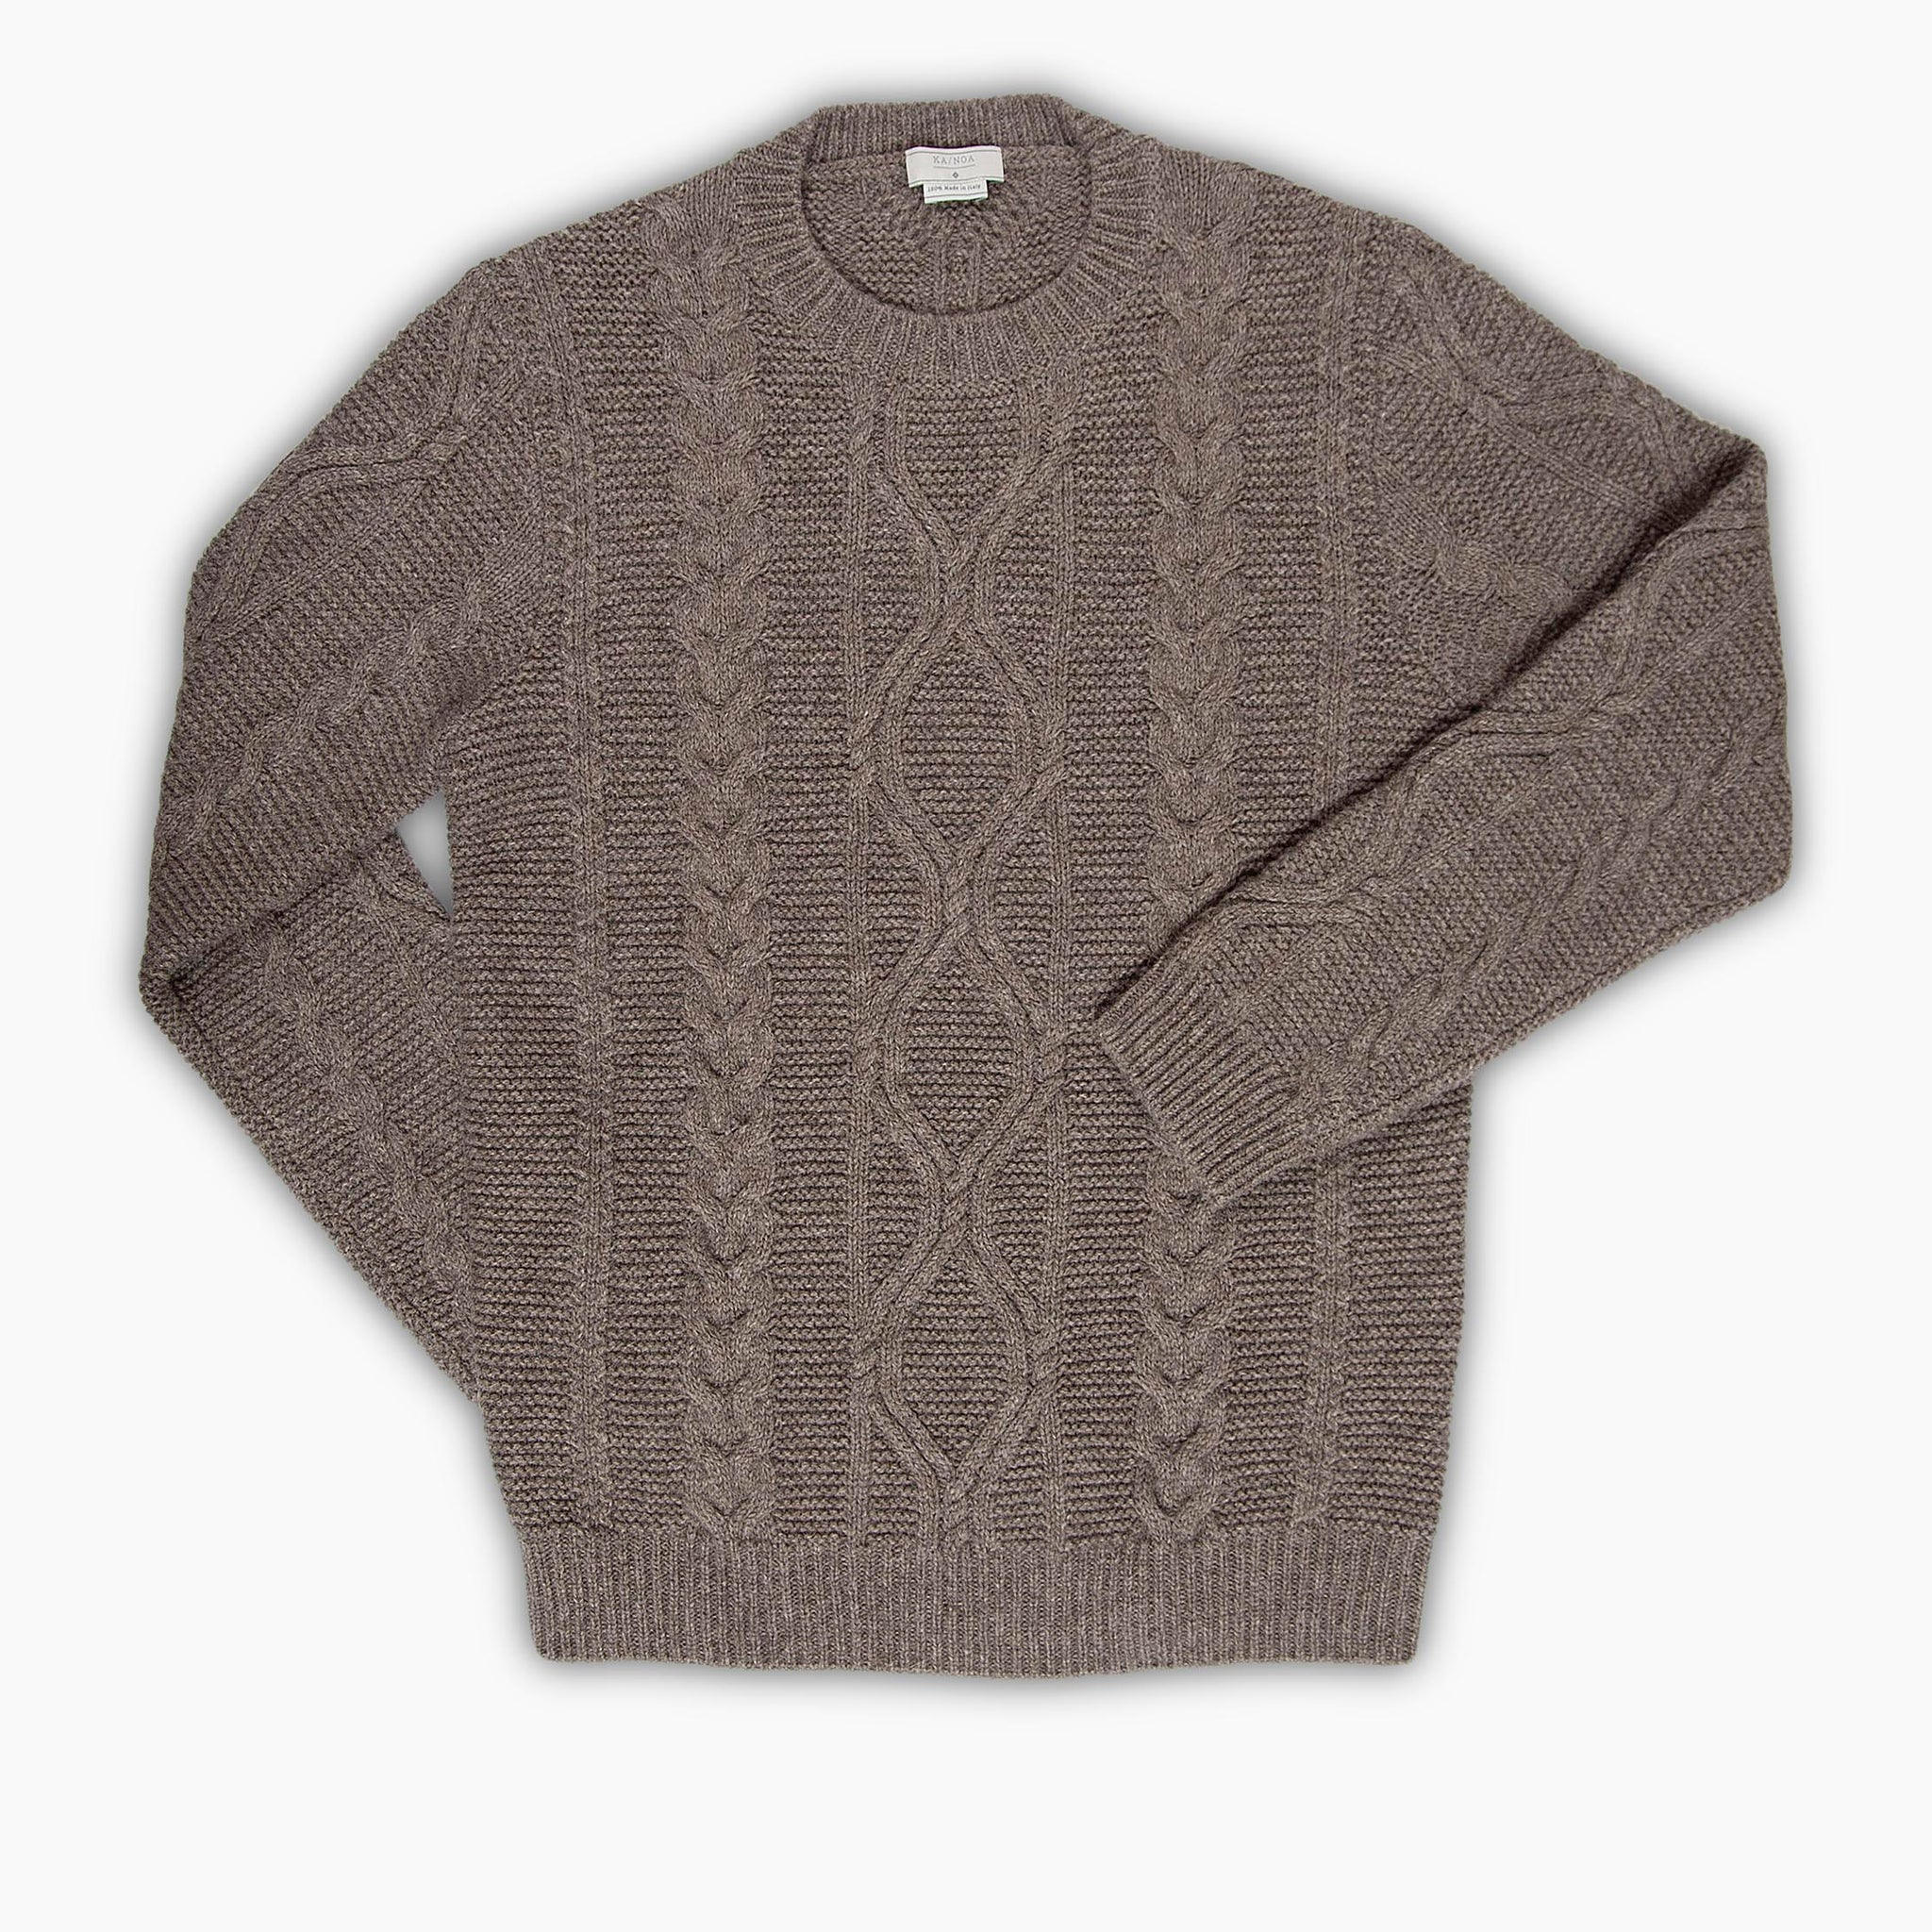 Fall/Winter - Knitwear